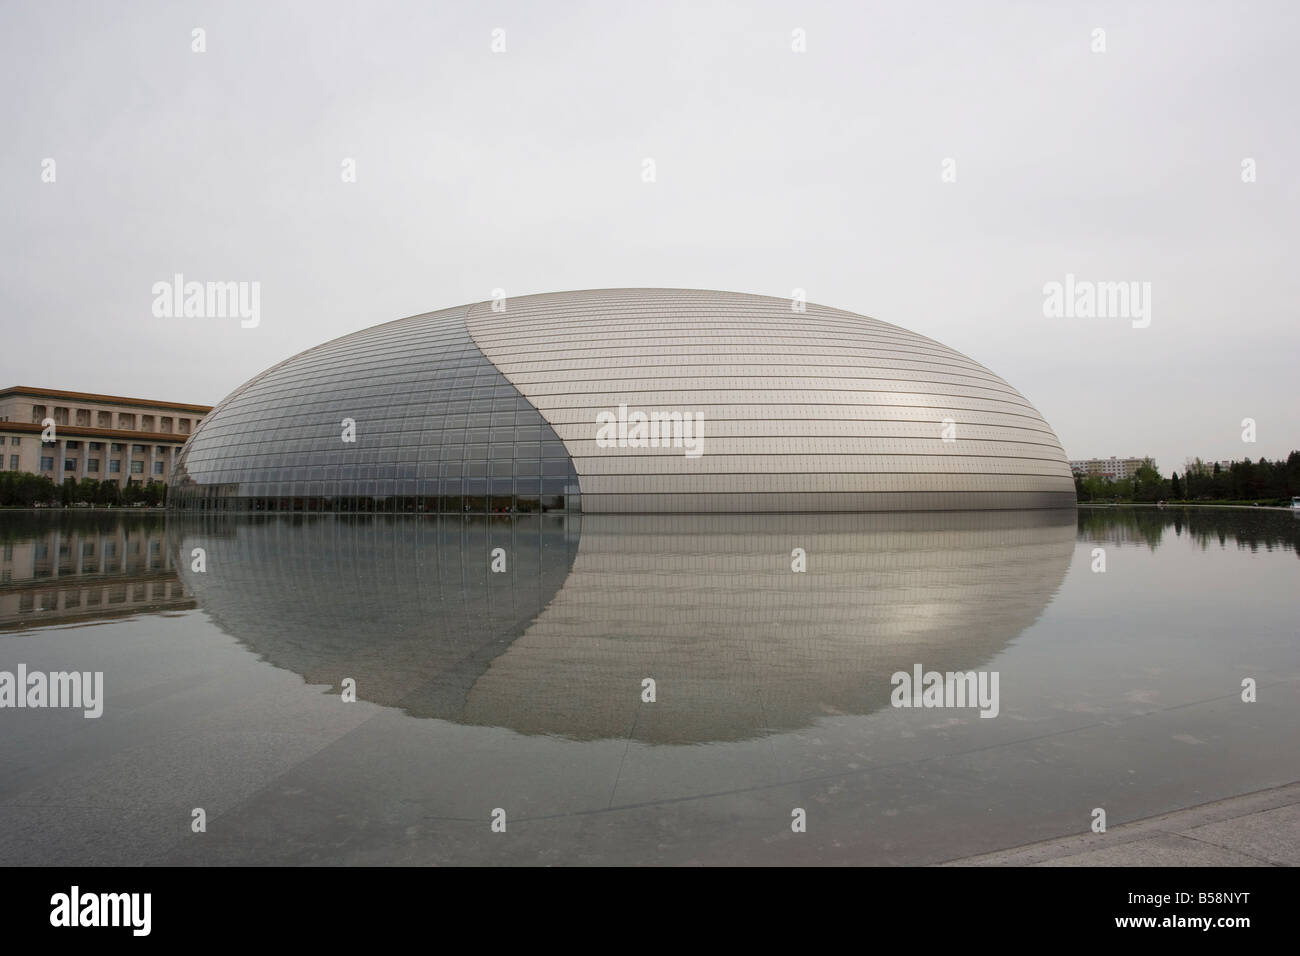 The National Opera Theater, Tiananmen Square, Beijing, China - Stock Image